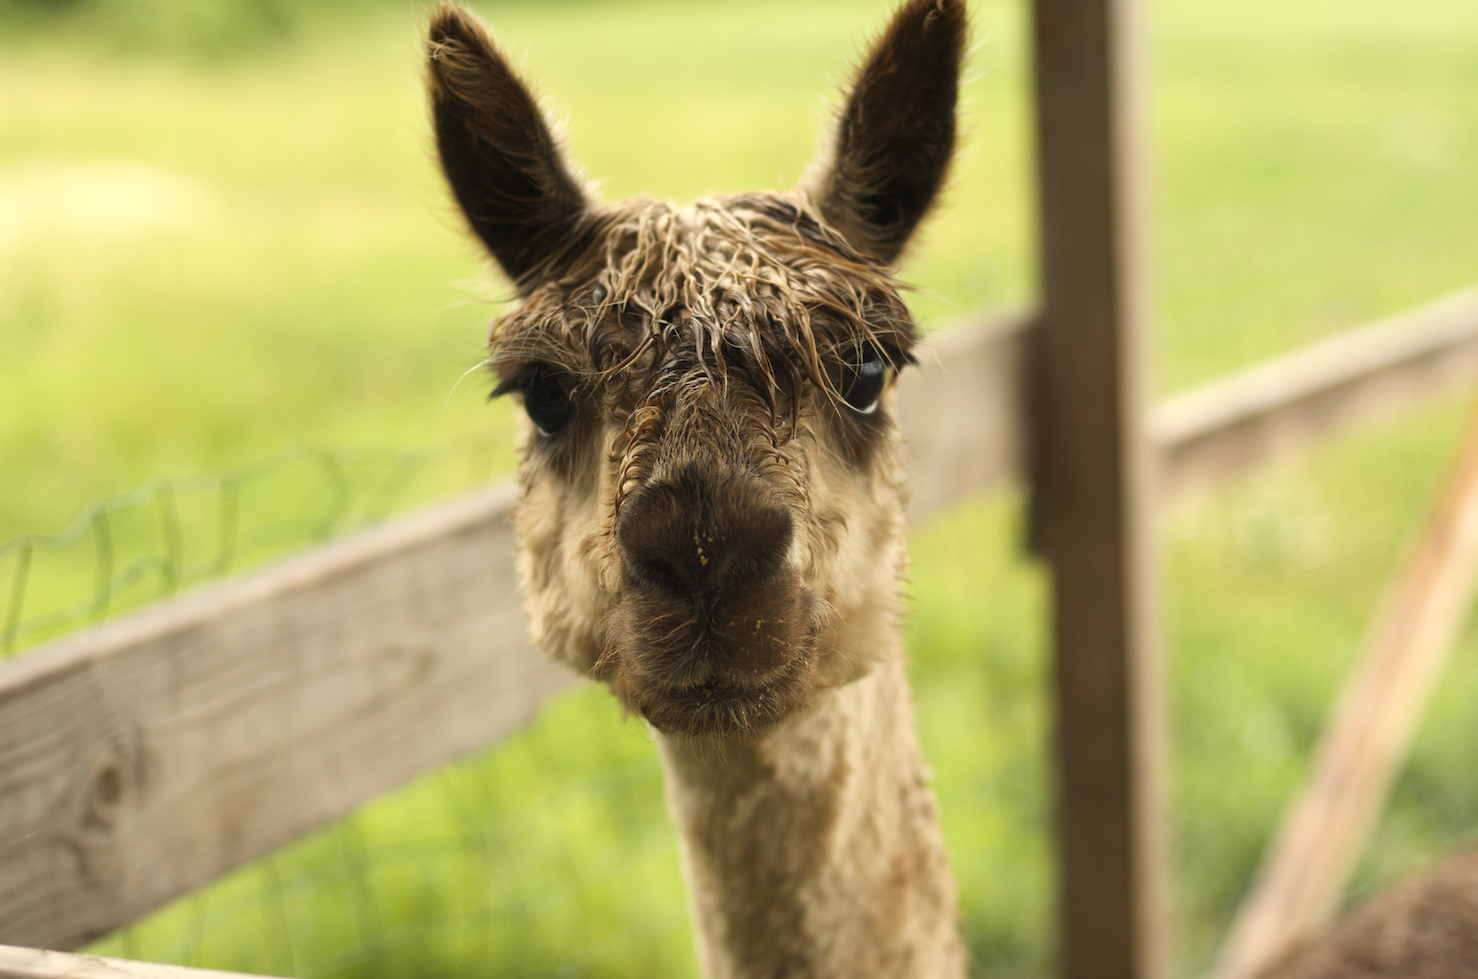 [An alpaca from the neck up, looking directly at the viewer with ears perked]